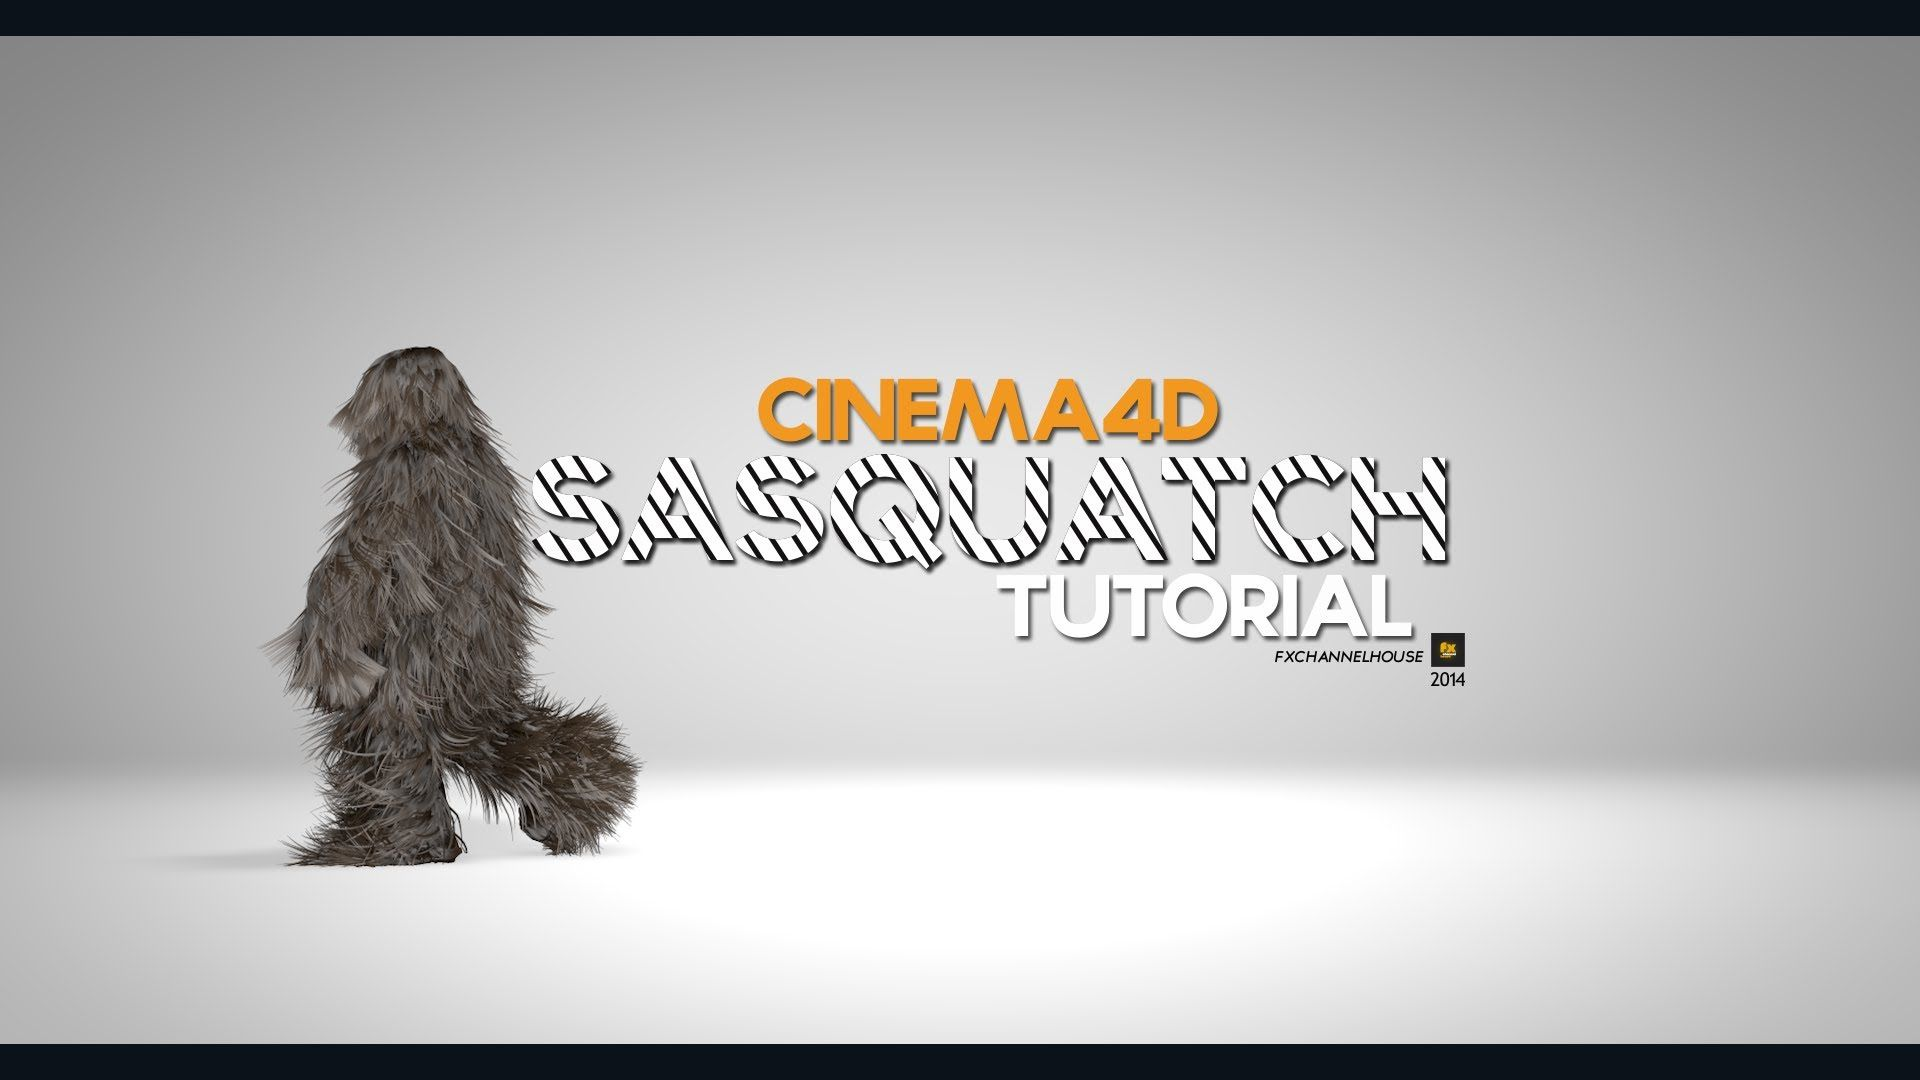 Character Design Cinema 4d Tutorial : New cinema d tutorial for hair how to make the sasquatch